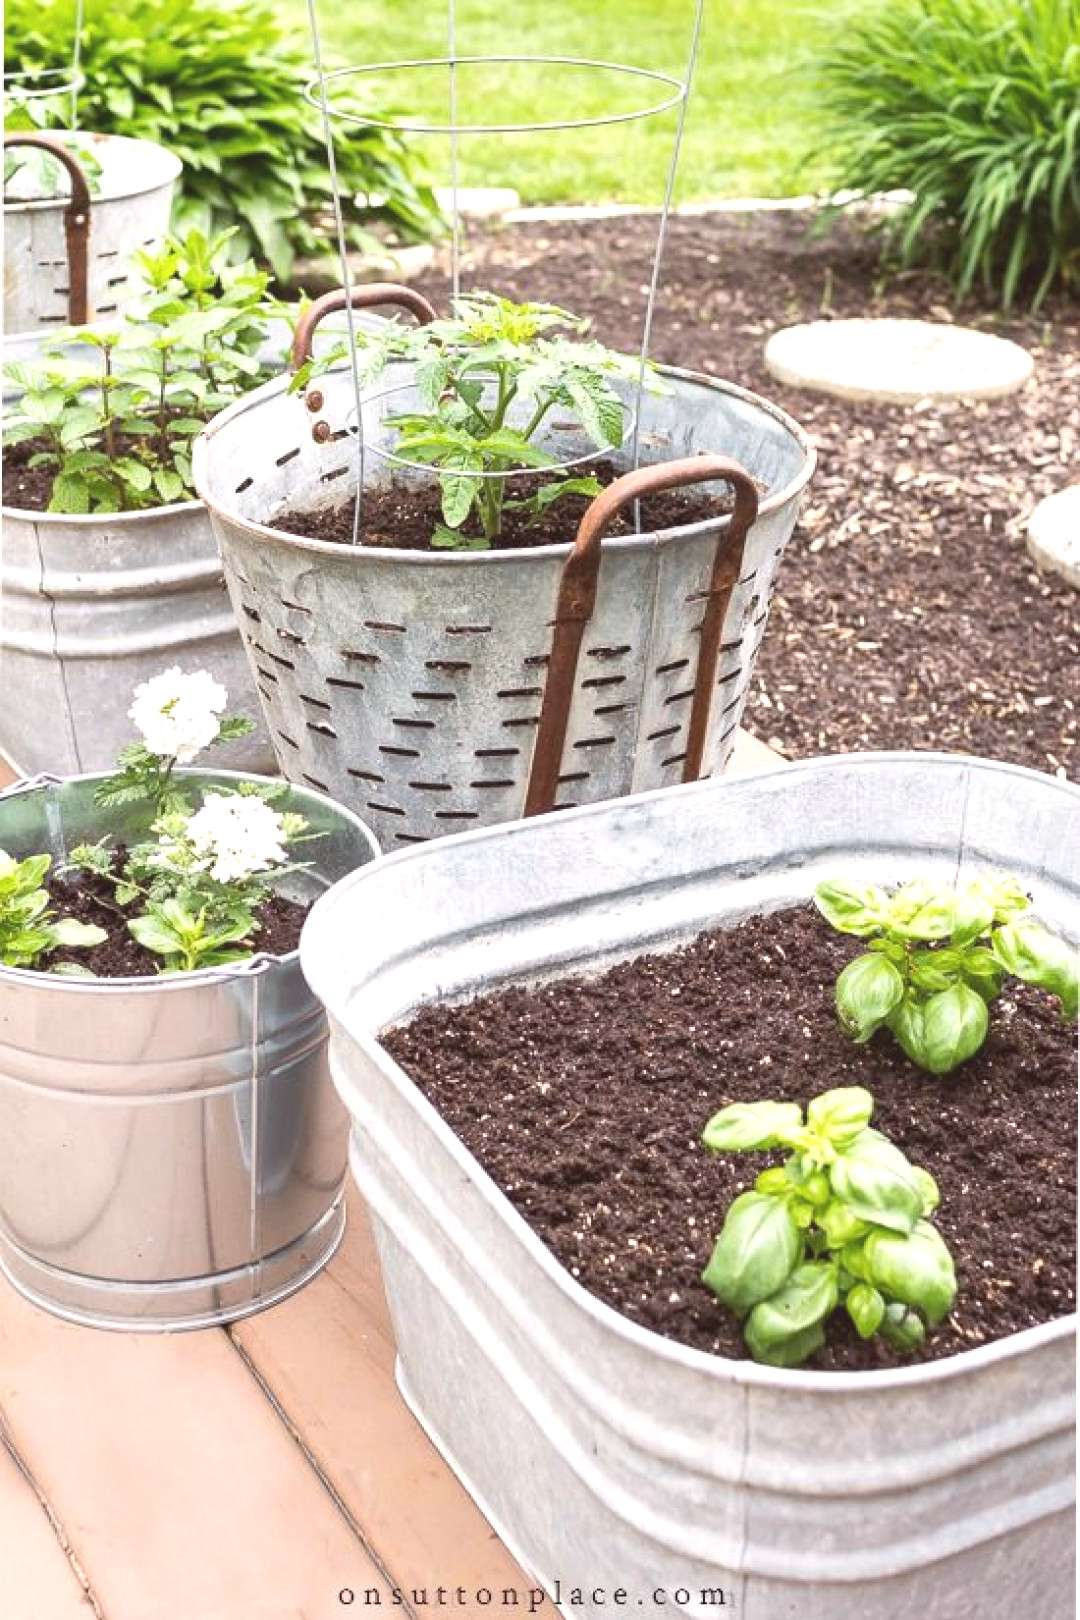 5 simple tips for successfully growing herbs in containers. Includes a list of herbs that can be pl